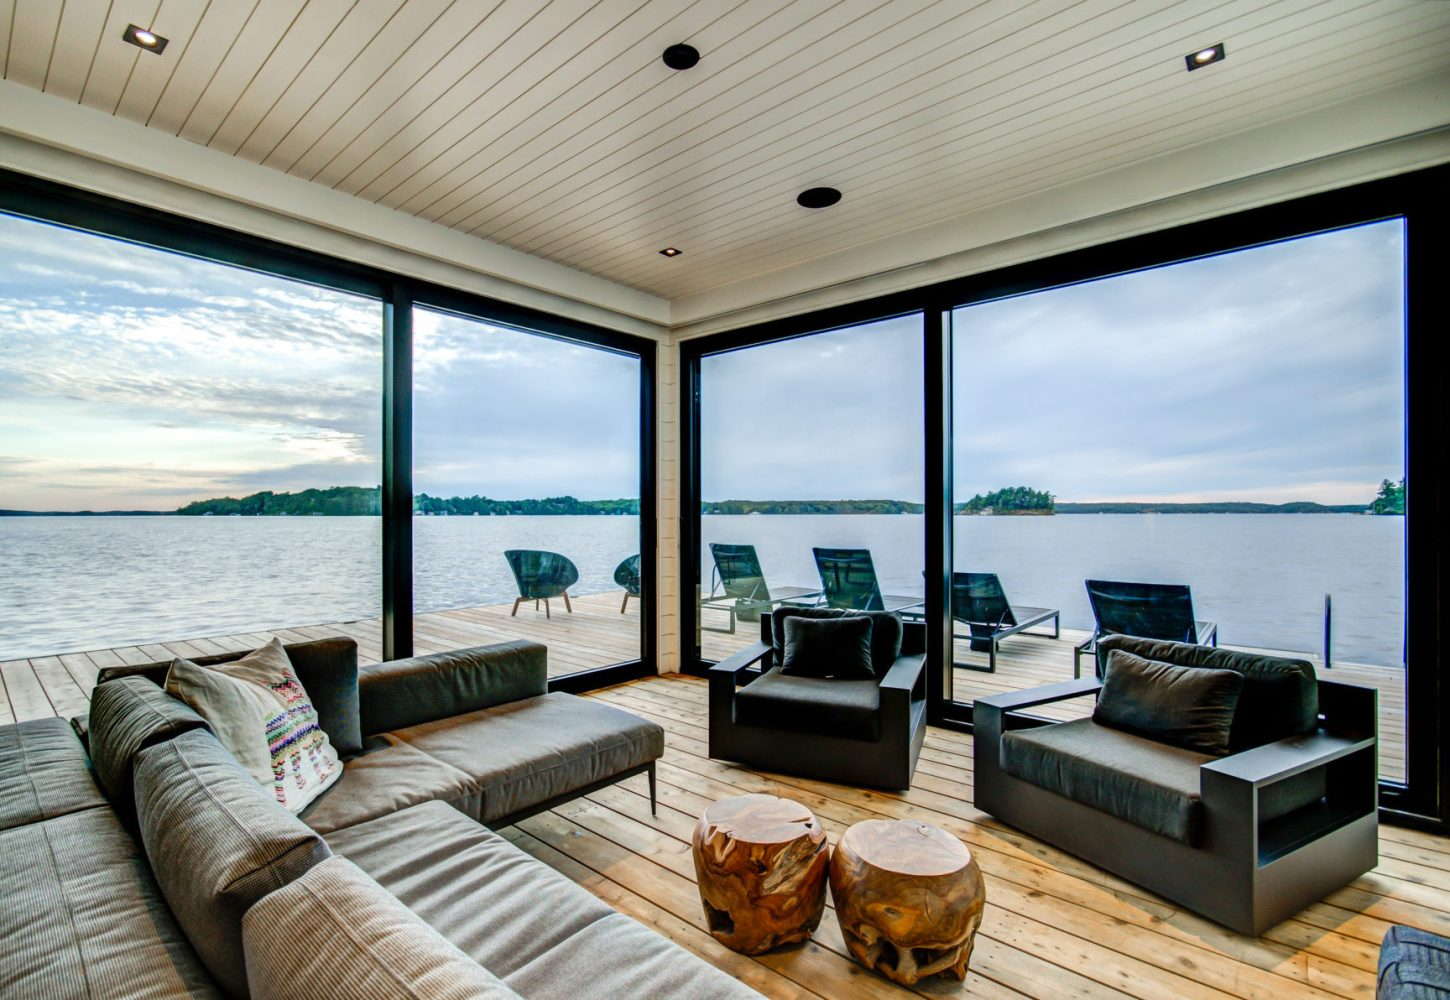 Contemporary modern lounge at lake level boathouse by PattyMac